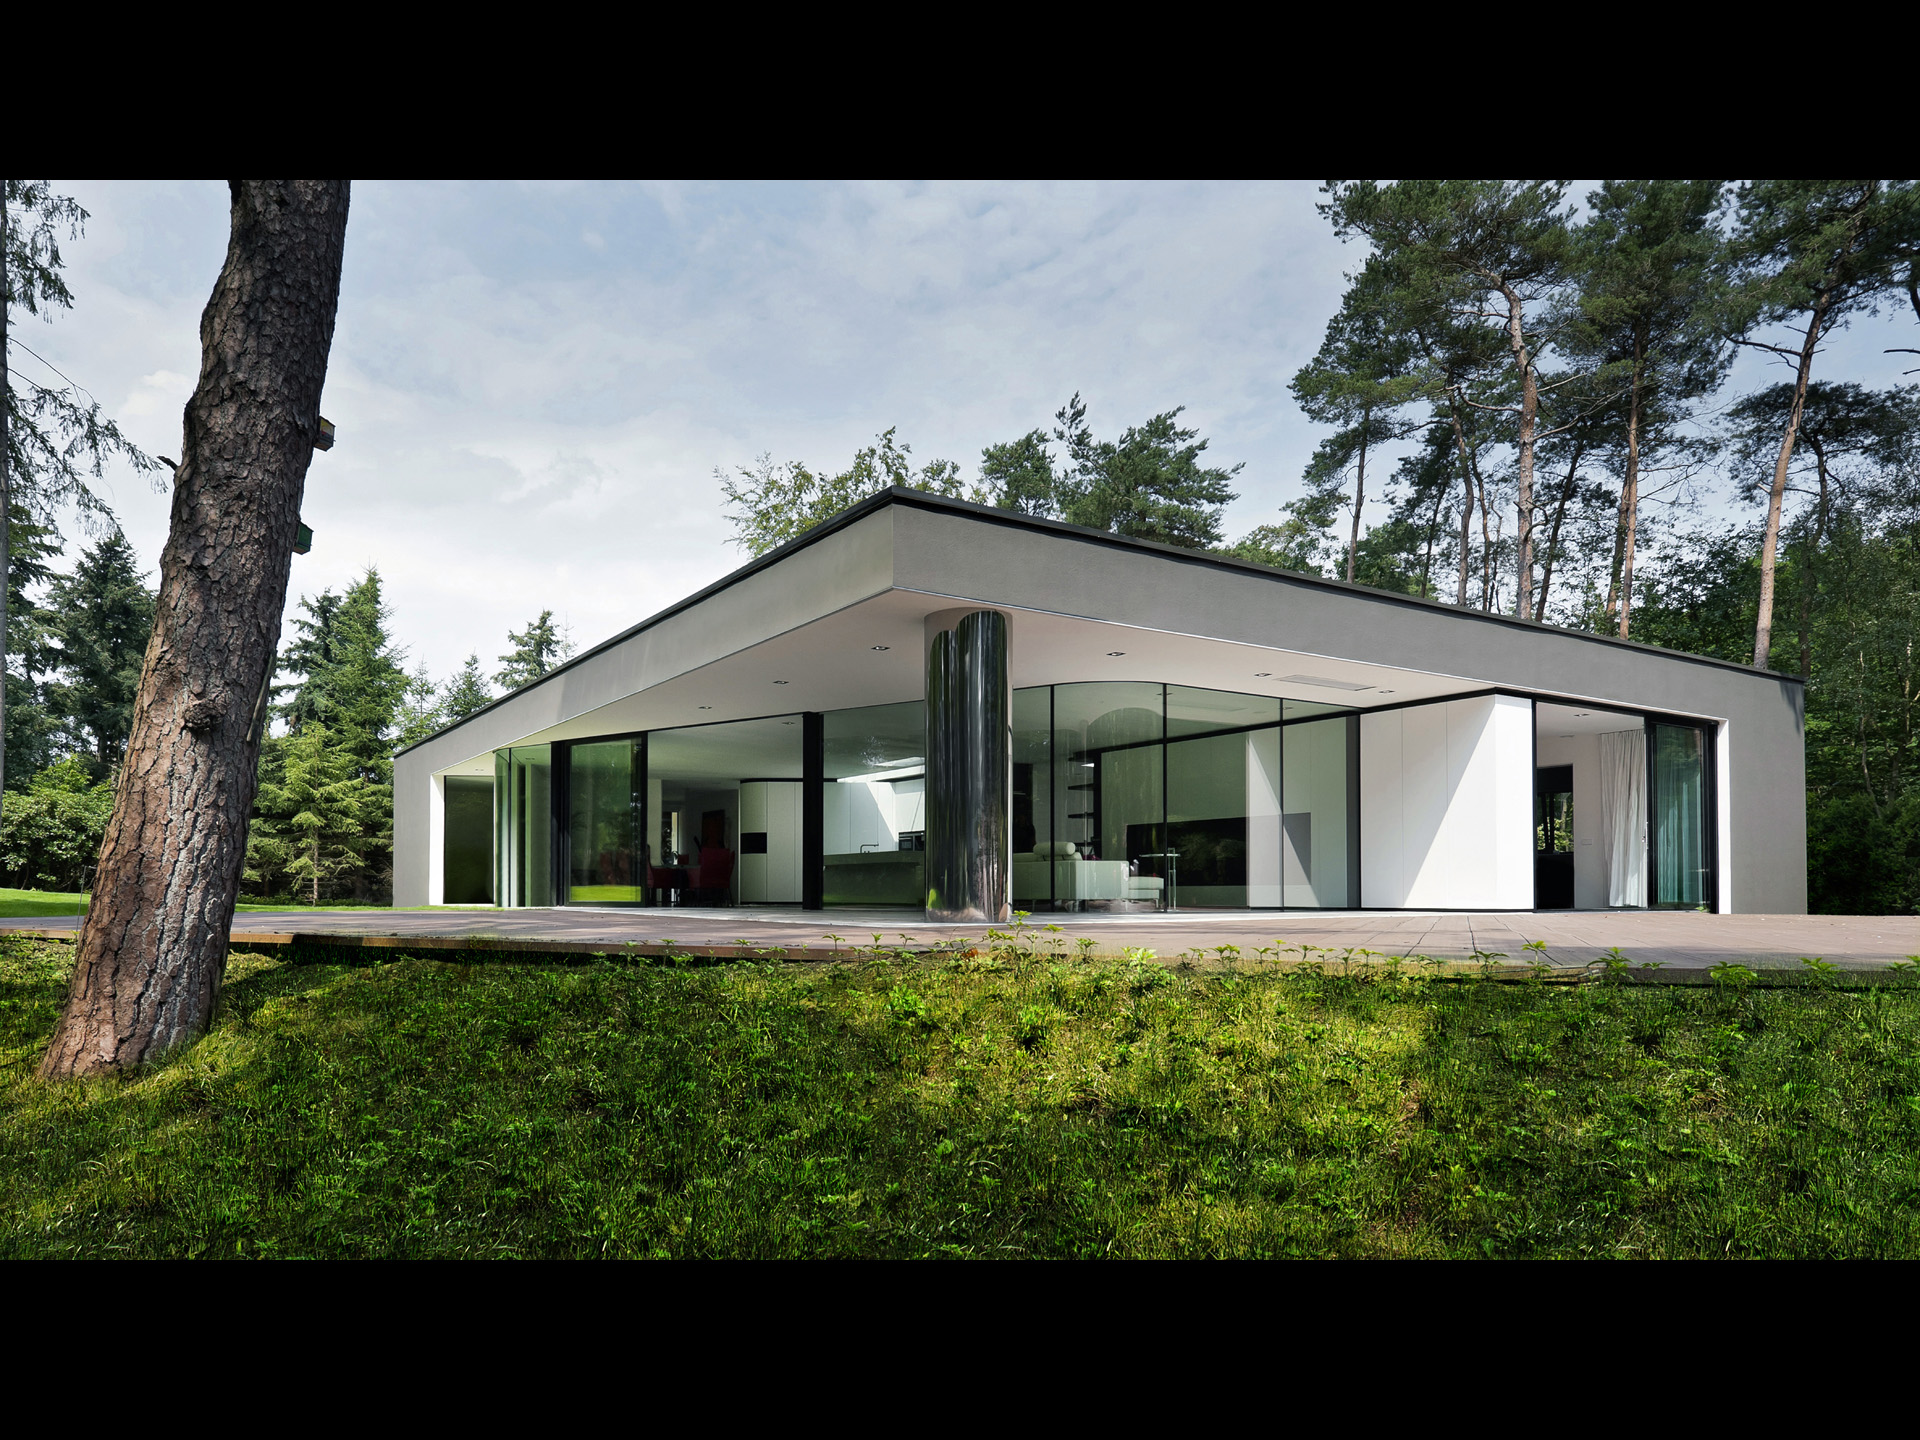 Villa Veth - modern bungalow connected to the outdoors